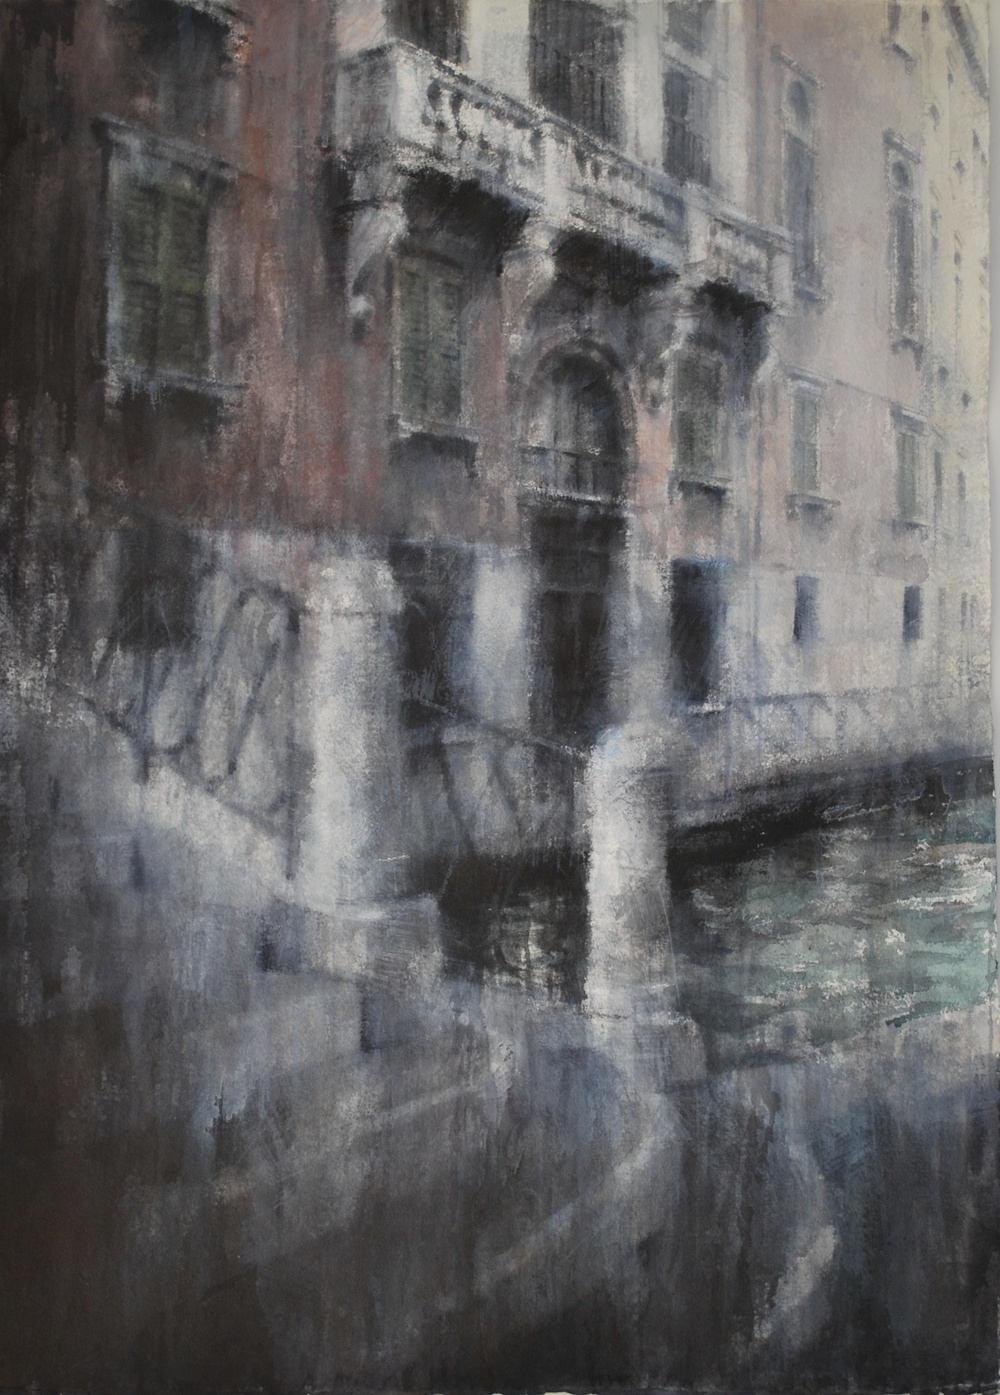 Steps of Venice I, 29x41 inches, (Private Collection)